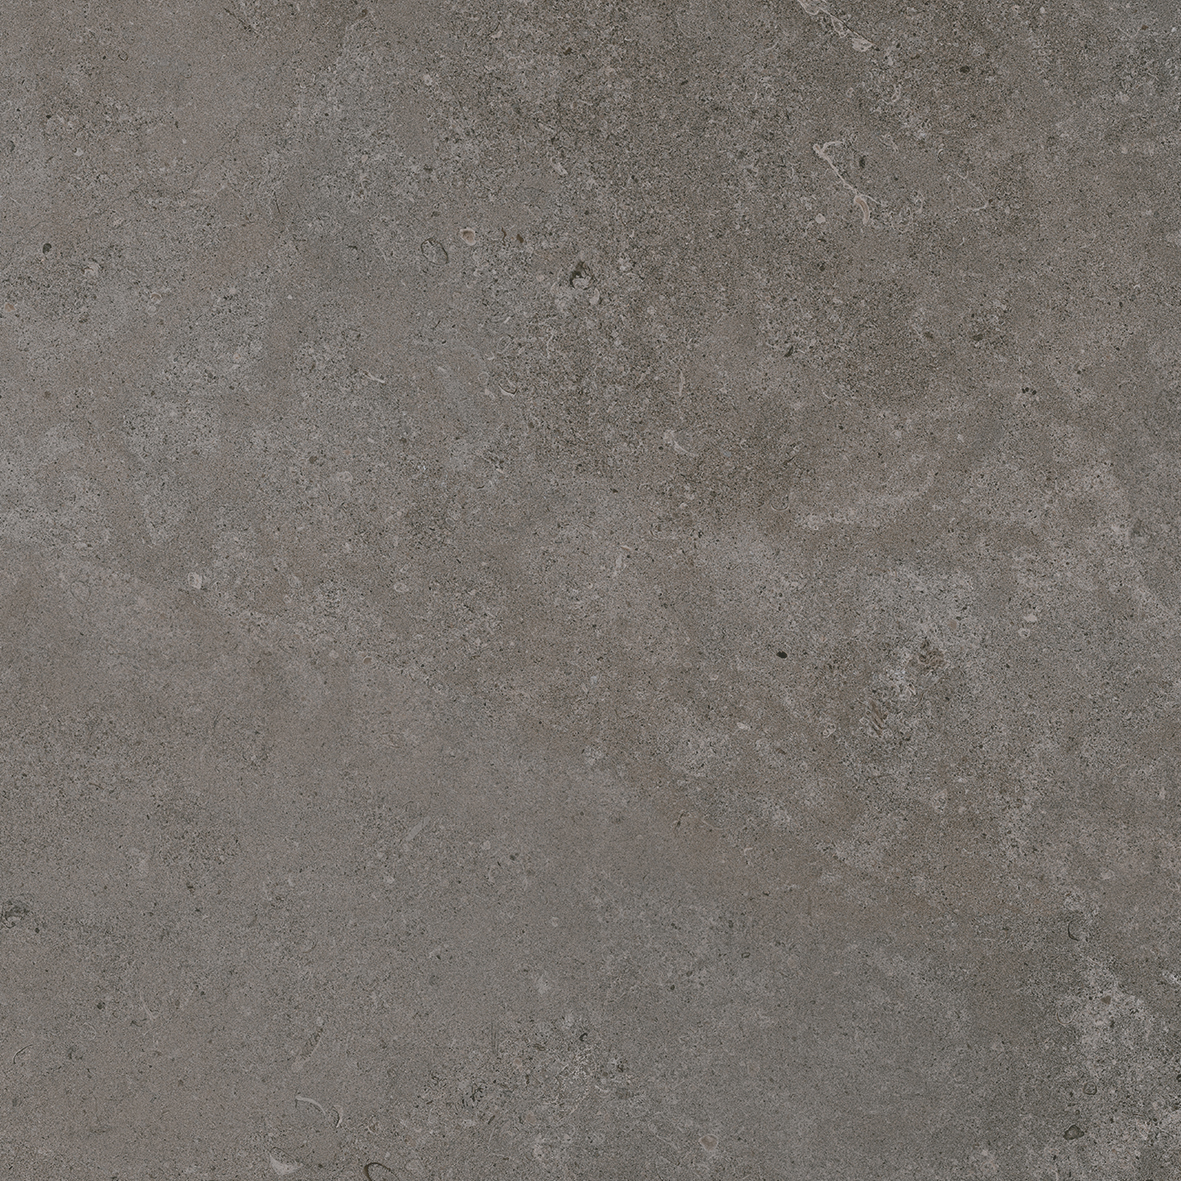 Porcelanosa Mosa-River Grey Tile 100 x 100 cm